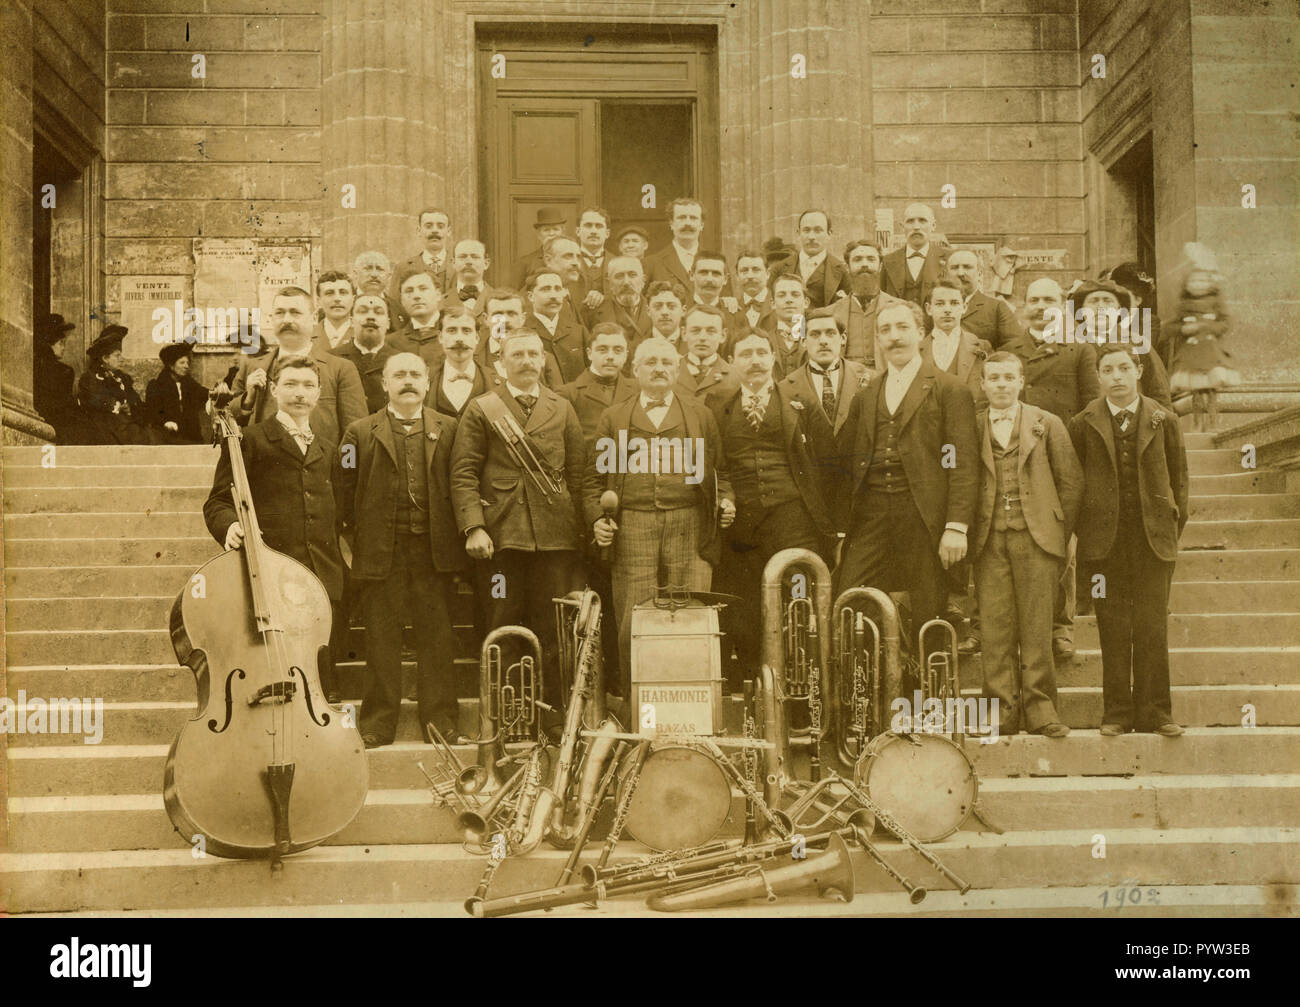 Musical brass band Harmonie Bazas, France 1902 - Stock Image